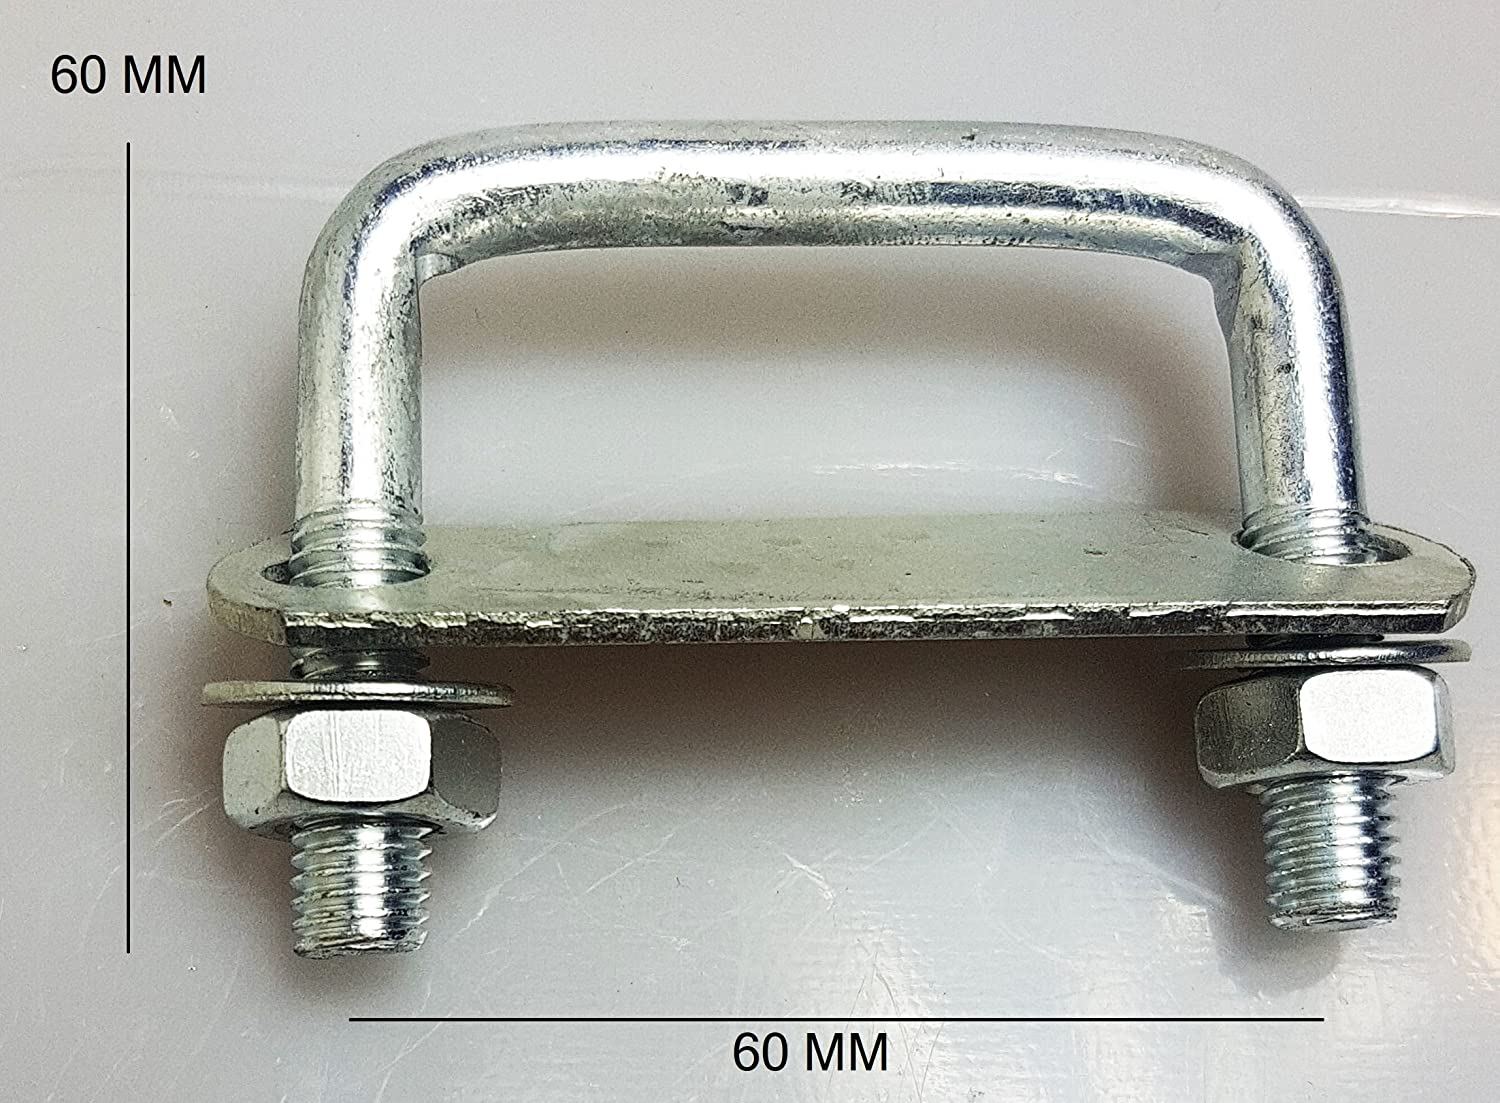 1 x Steel Square U-bolt Brackets Roof Boat Trailer 60x60x10mm M10 Nuts Plate UB4 UBS-60A CSS